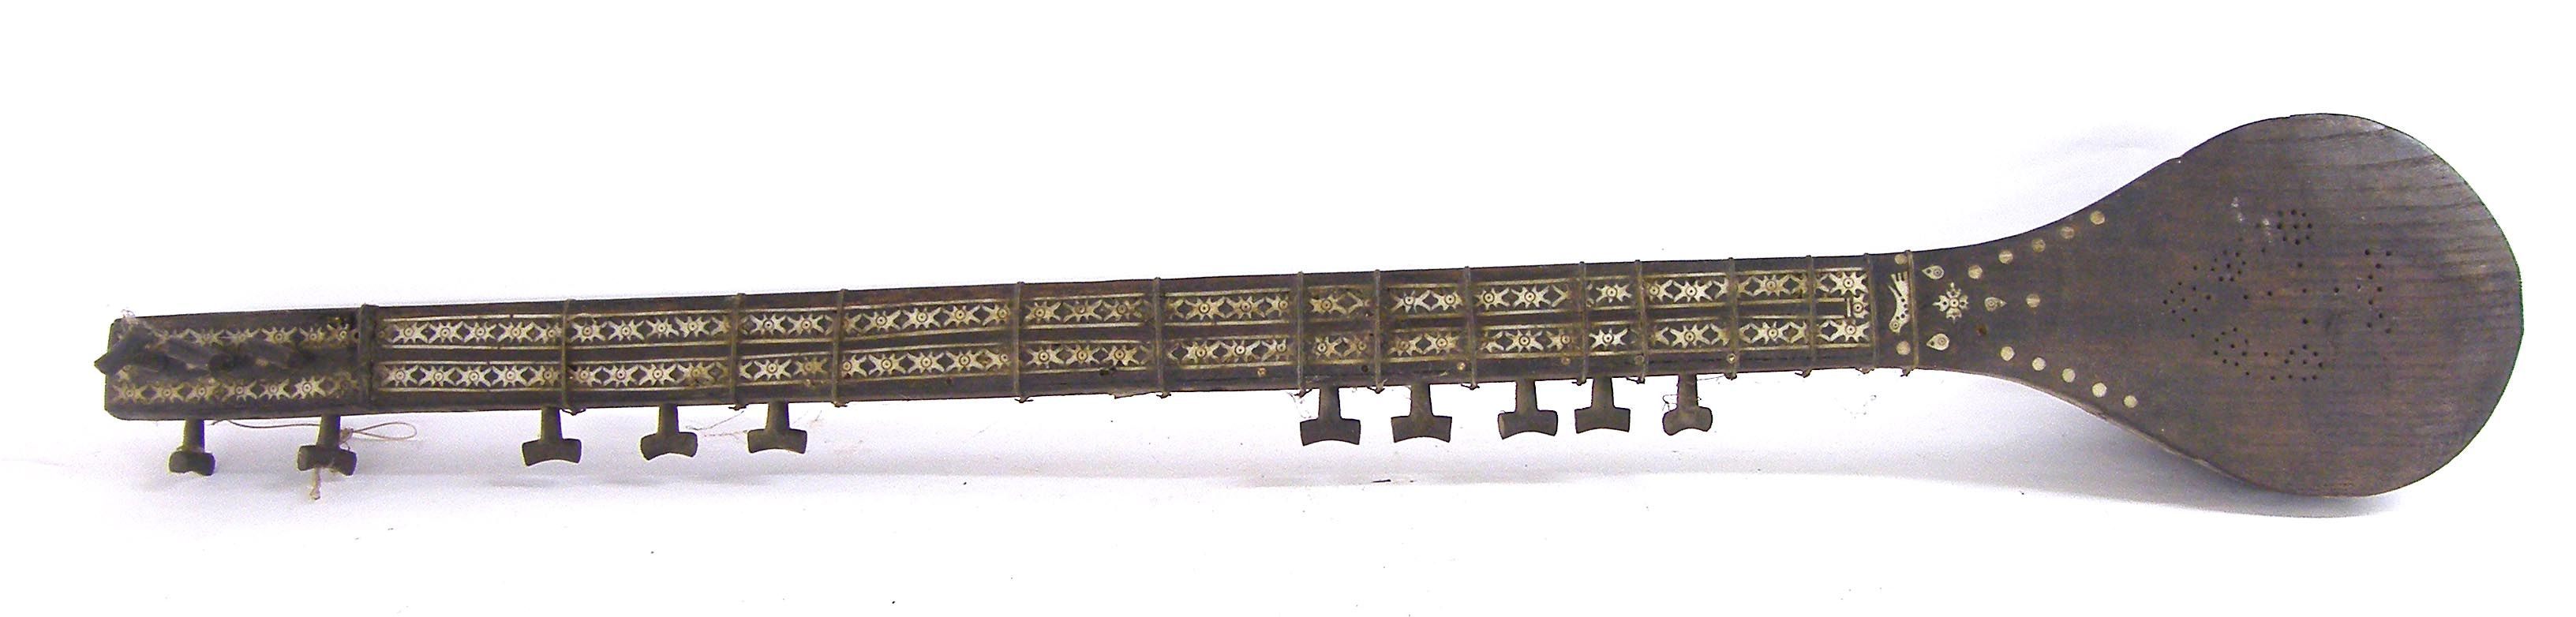 19th century tambour, possibly Afghan, the neck and body with geometric bone inlay (a.f)